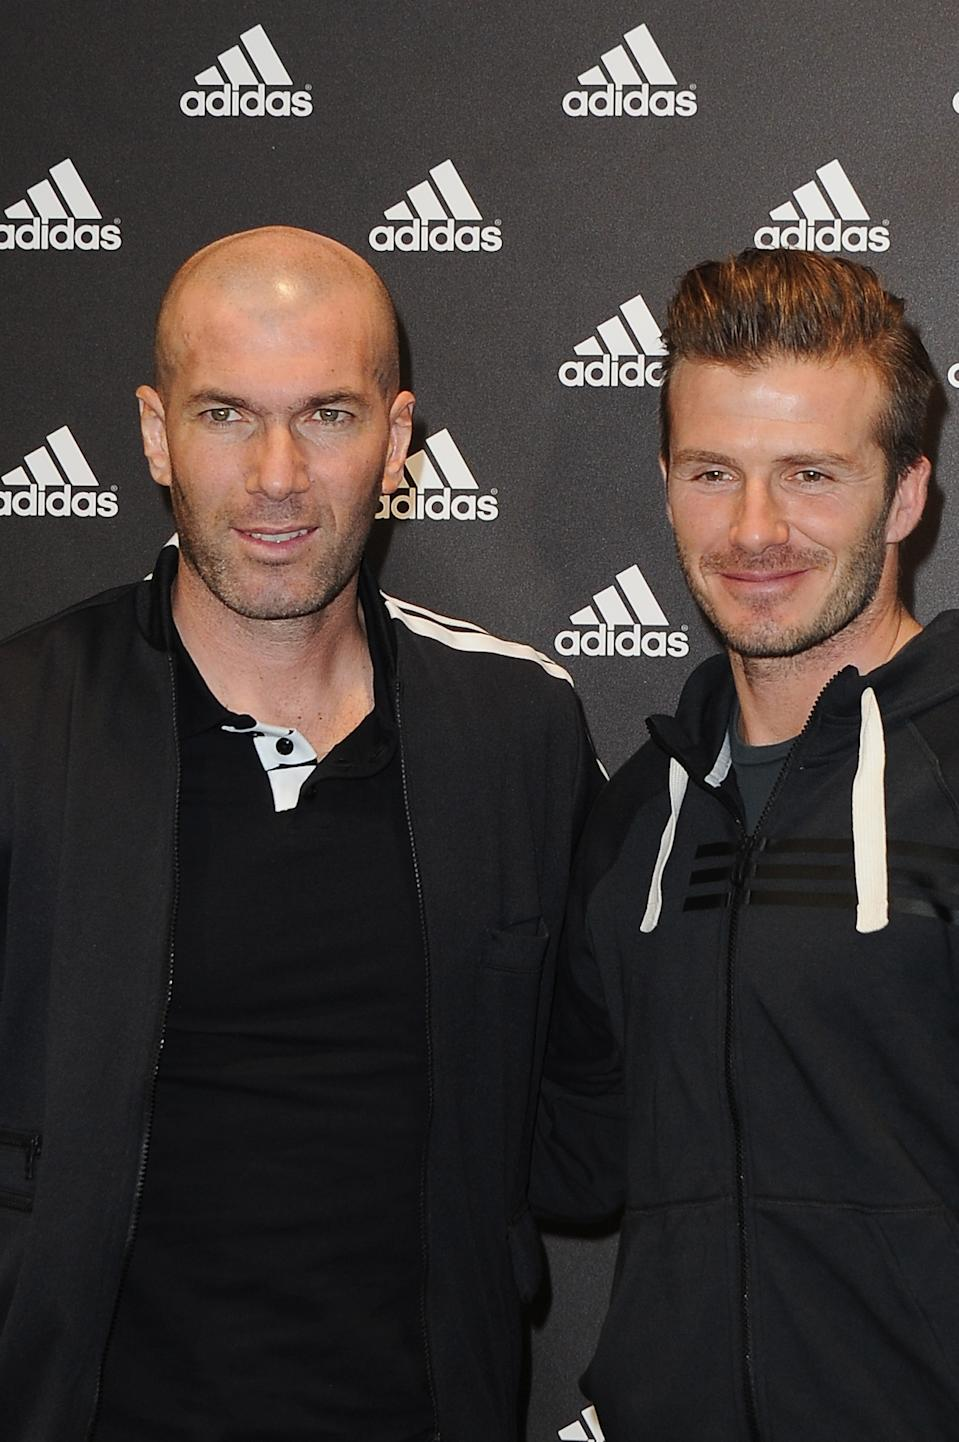 PARIS, FRANCE - FEBRUARY 28: David Beckham and Zinedine Zidane attend an autograph session at adidas Performance Store Champs-Elysees on February 28, 2013 in Paris, France.  (Photo by Pascal Le Segretain/WireImage)